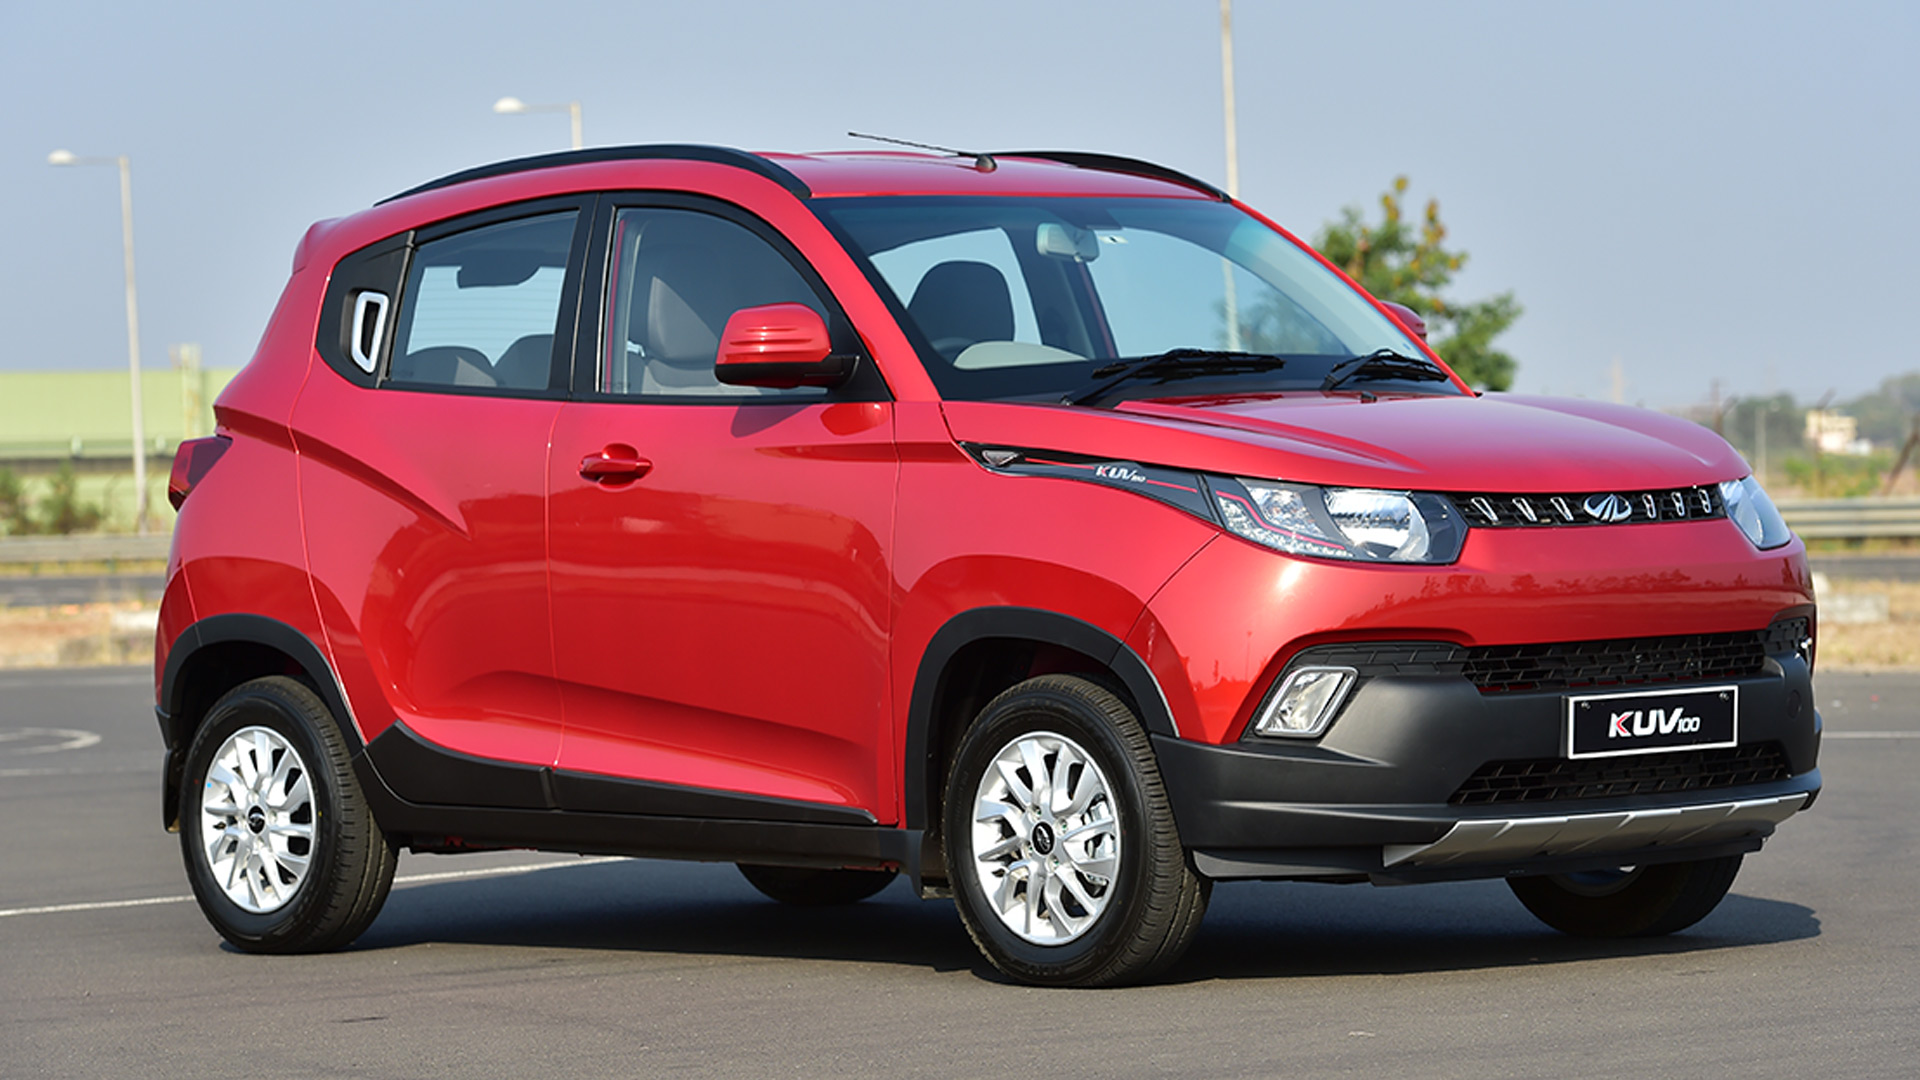 Mahindra Kuv 100 2016 K8 Diesel Compare Car Photos Overdrive